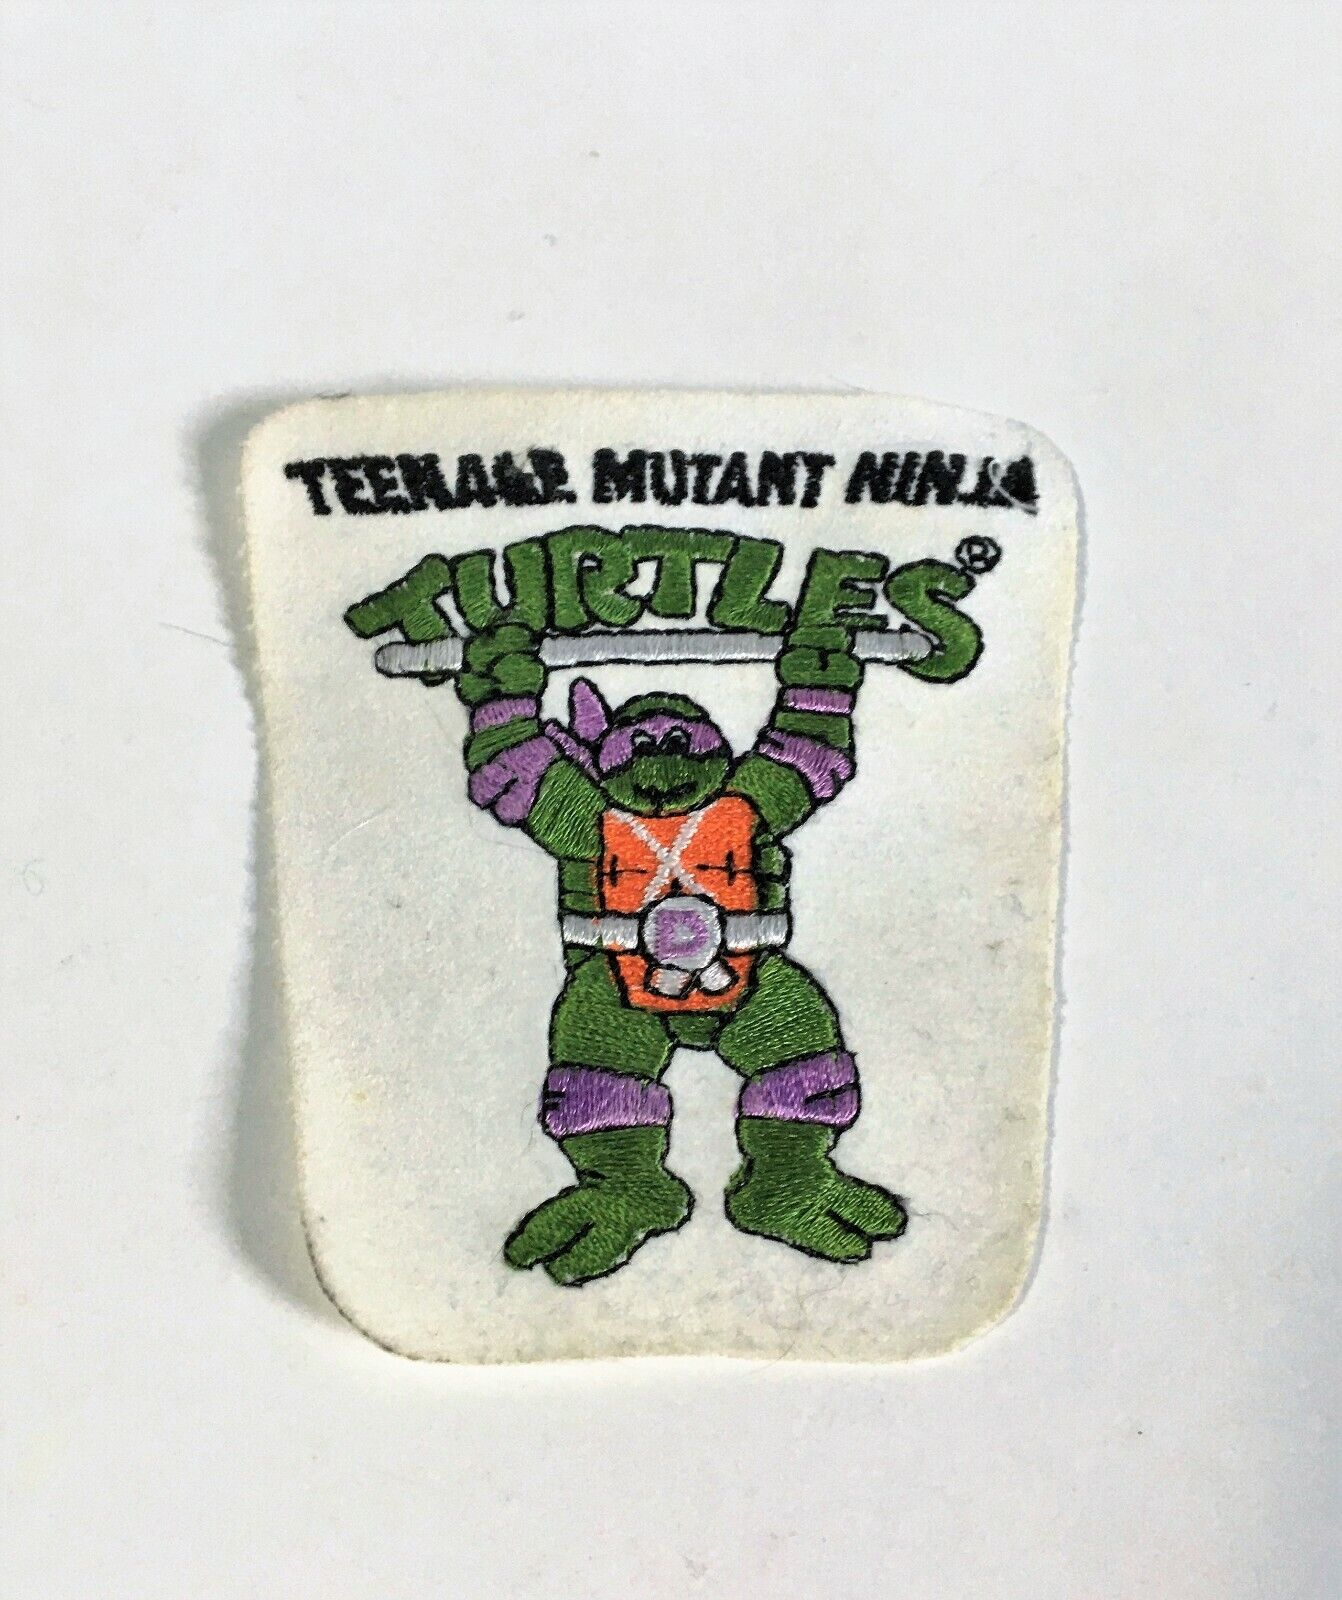 Vintage 1980 s Teenage Mutant Ninja Turtles Donatello Patch - $5.00